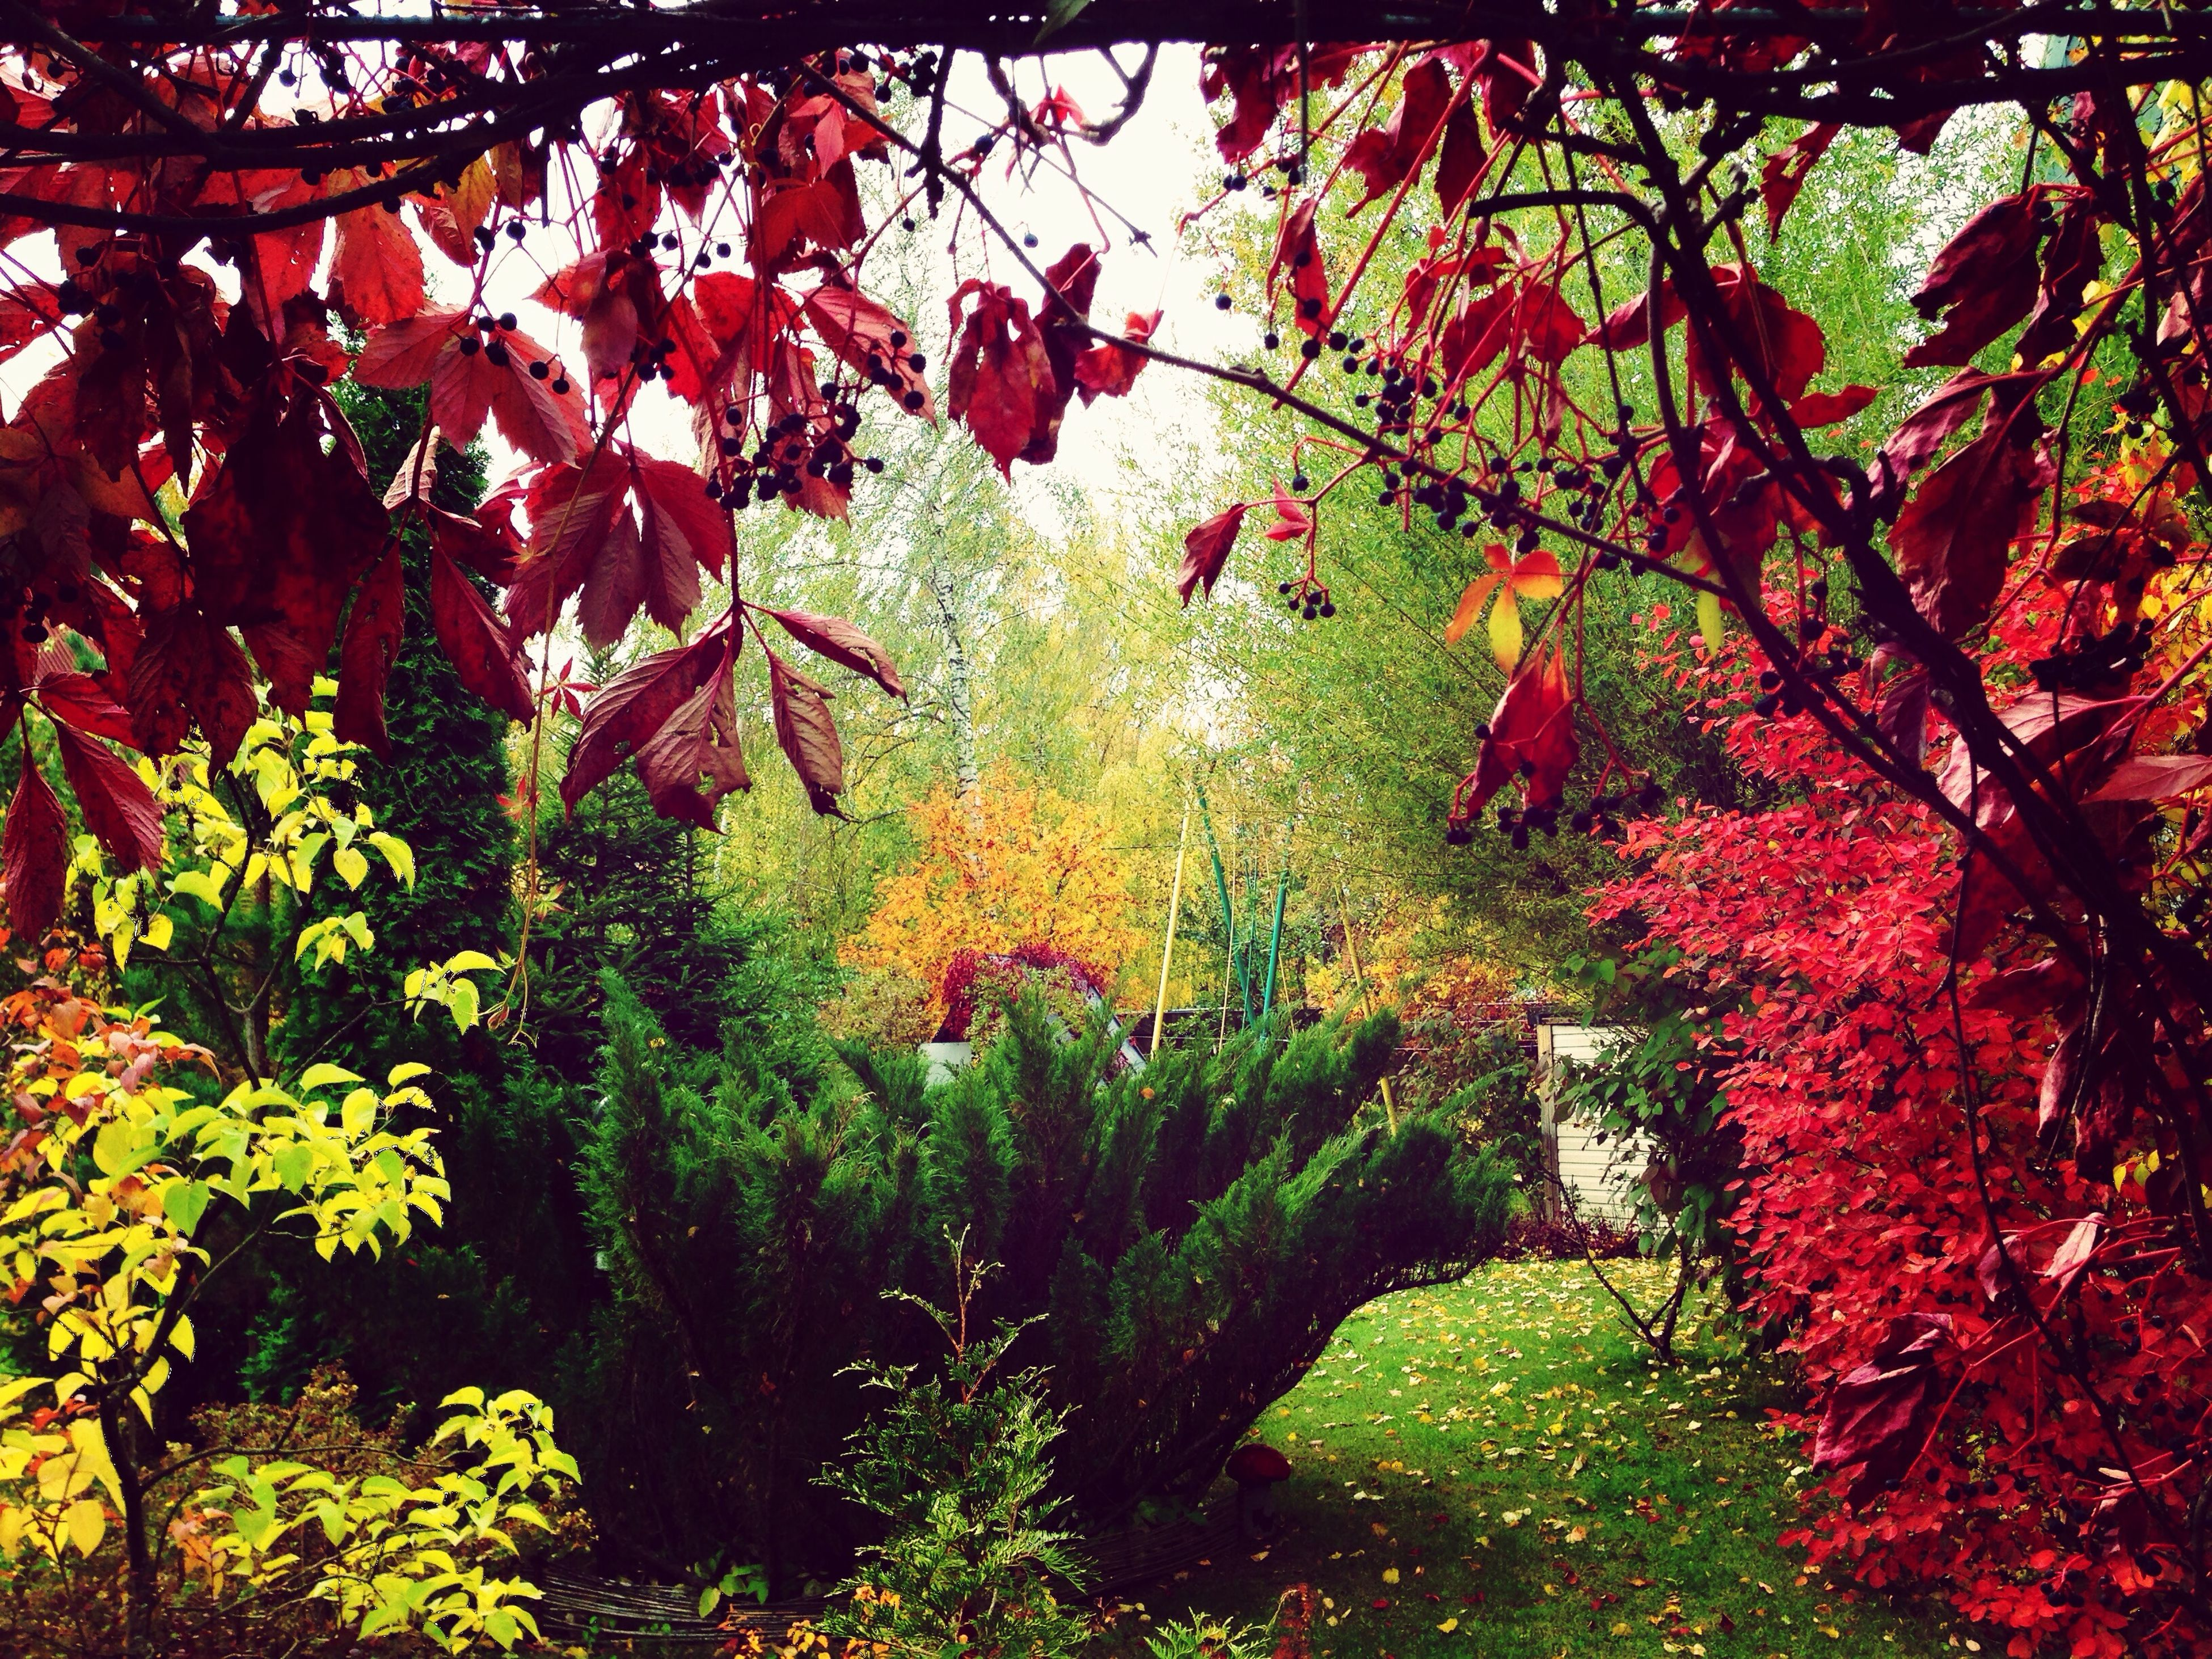 tree, branch, growth, beauty in nature, red, leaf, nature, autumn, tranquility, change, flower, season, lush foliage, freshness, green color, plant, tranquil scene, scenics, day, no people